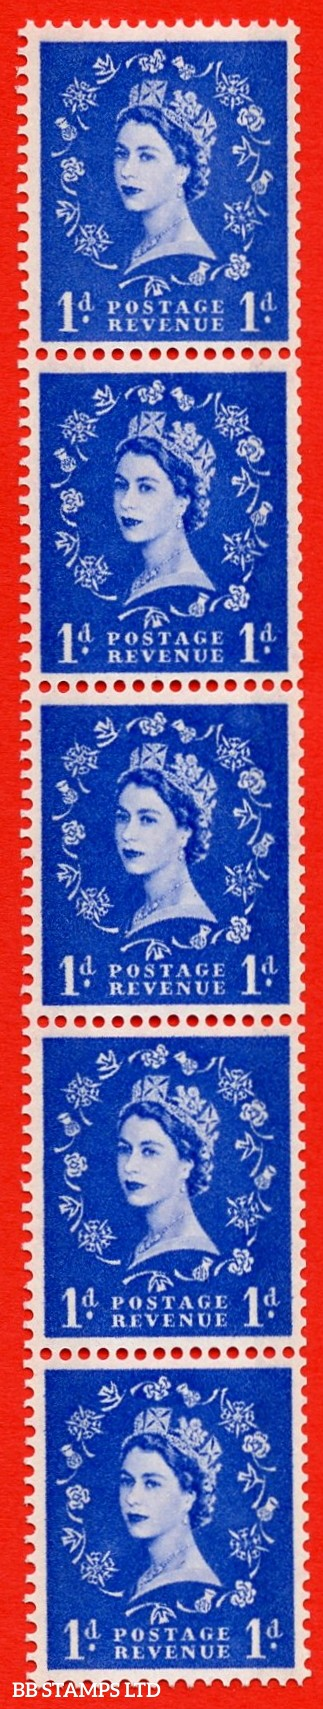 SG.611. S24var. 1d Ultramarine. A superb UNMOUNTED MINT example. Coil strip of 5. violet Phosphor 8mm Band. With a spot on thistle head ERROR. Unlisted in SG catalogue Variety.